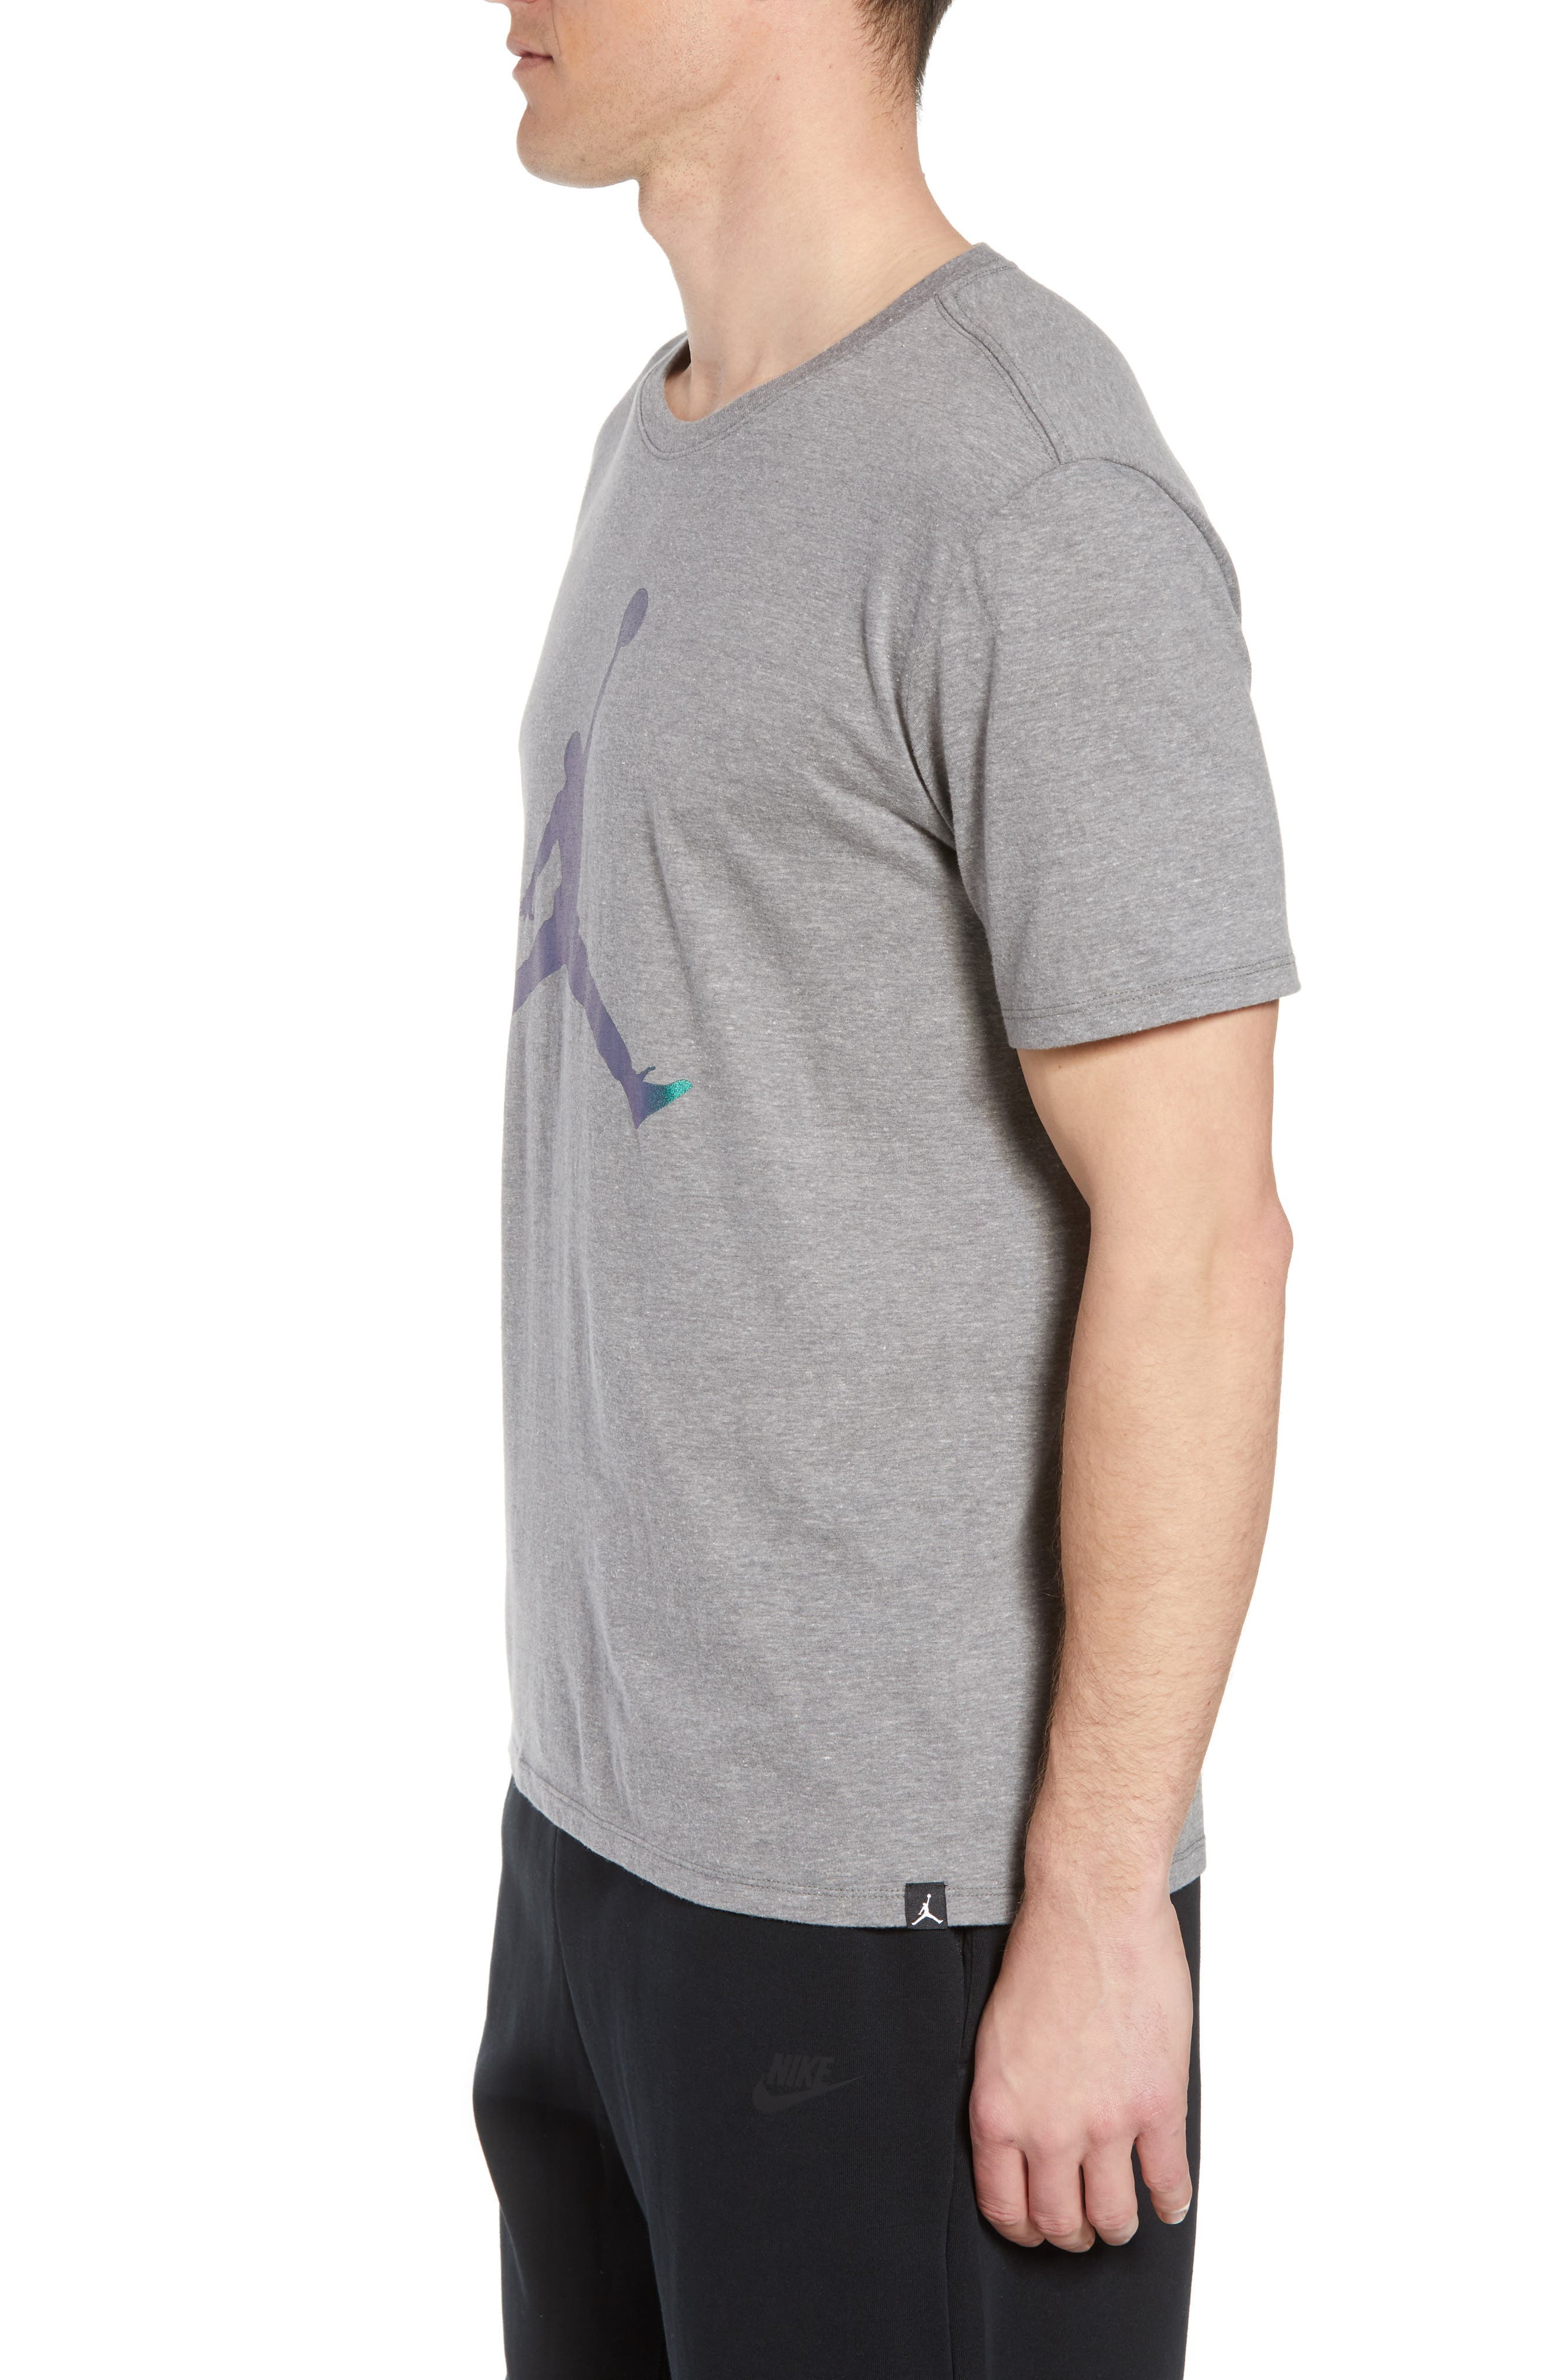 Nike Jumpman Tee,                             Alternate thumbnail 3, color,                             CARBON HEATHER